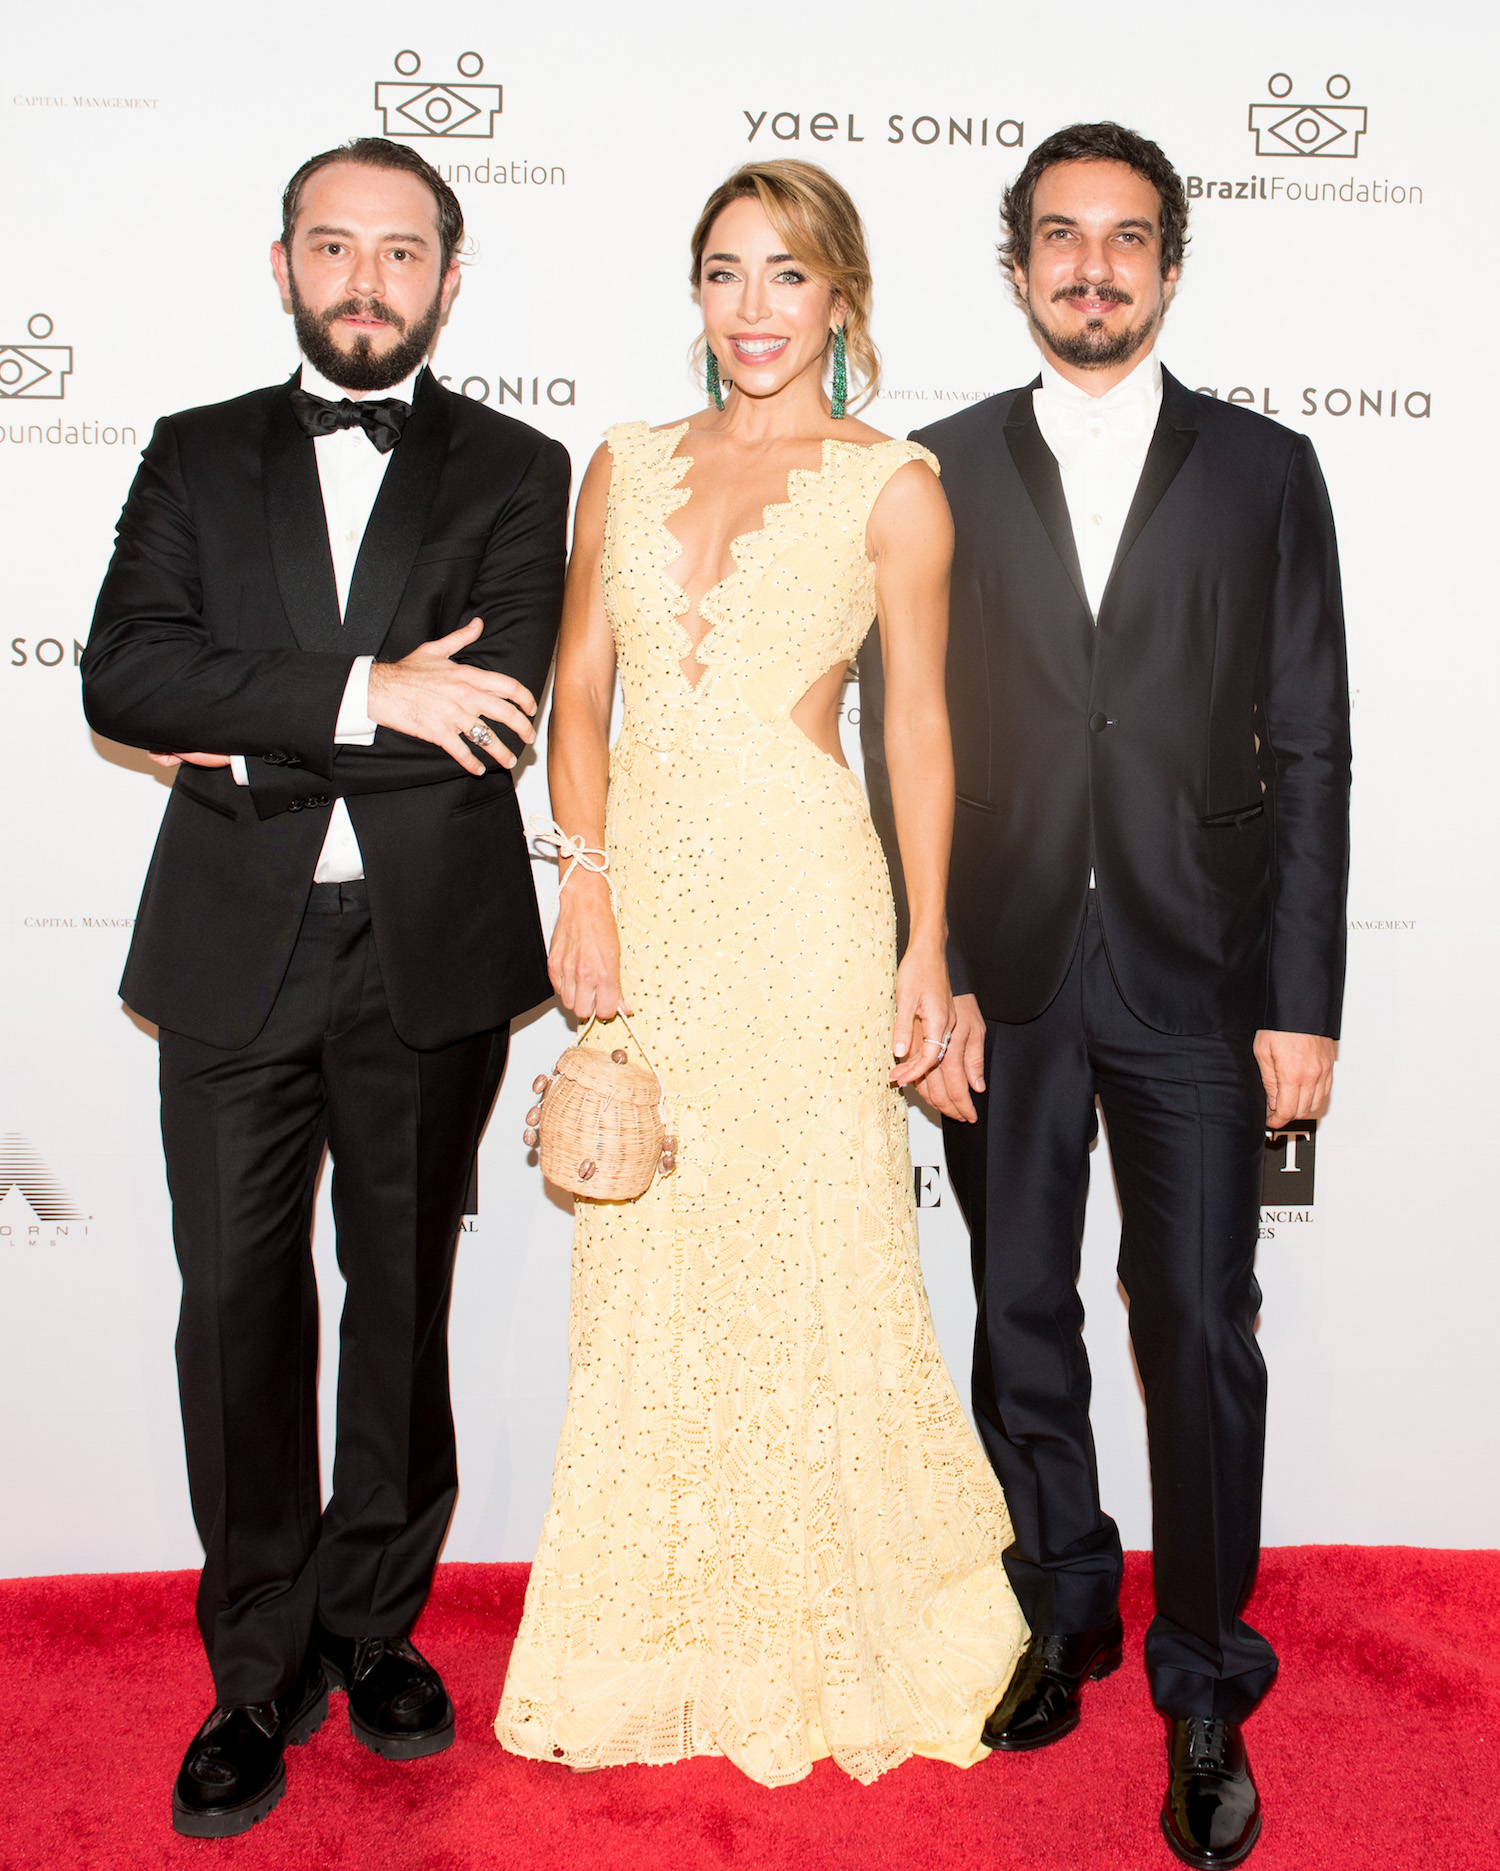 Jeff Ares, Katia Francesconi, Thiago Cavalli Azambuja BrazilFoundation XVI Gala New York Celebrating the Amazon Plaza